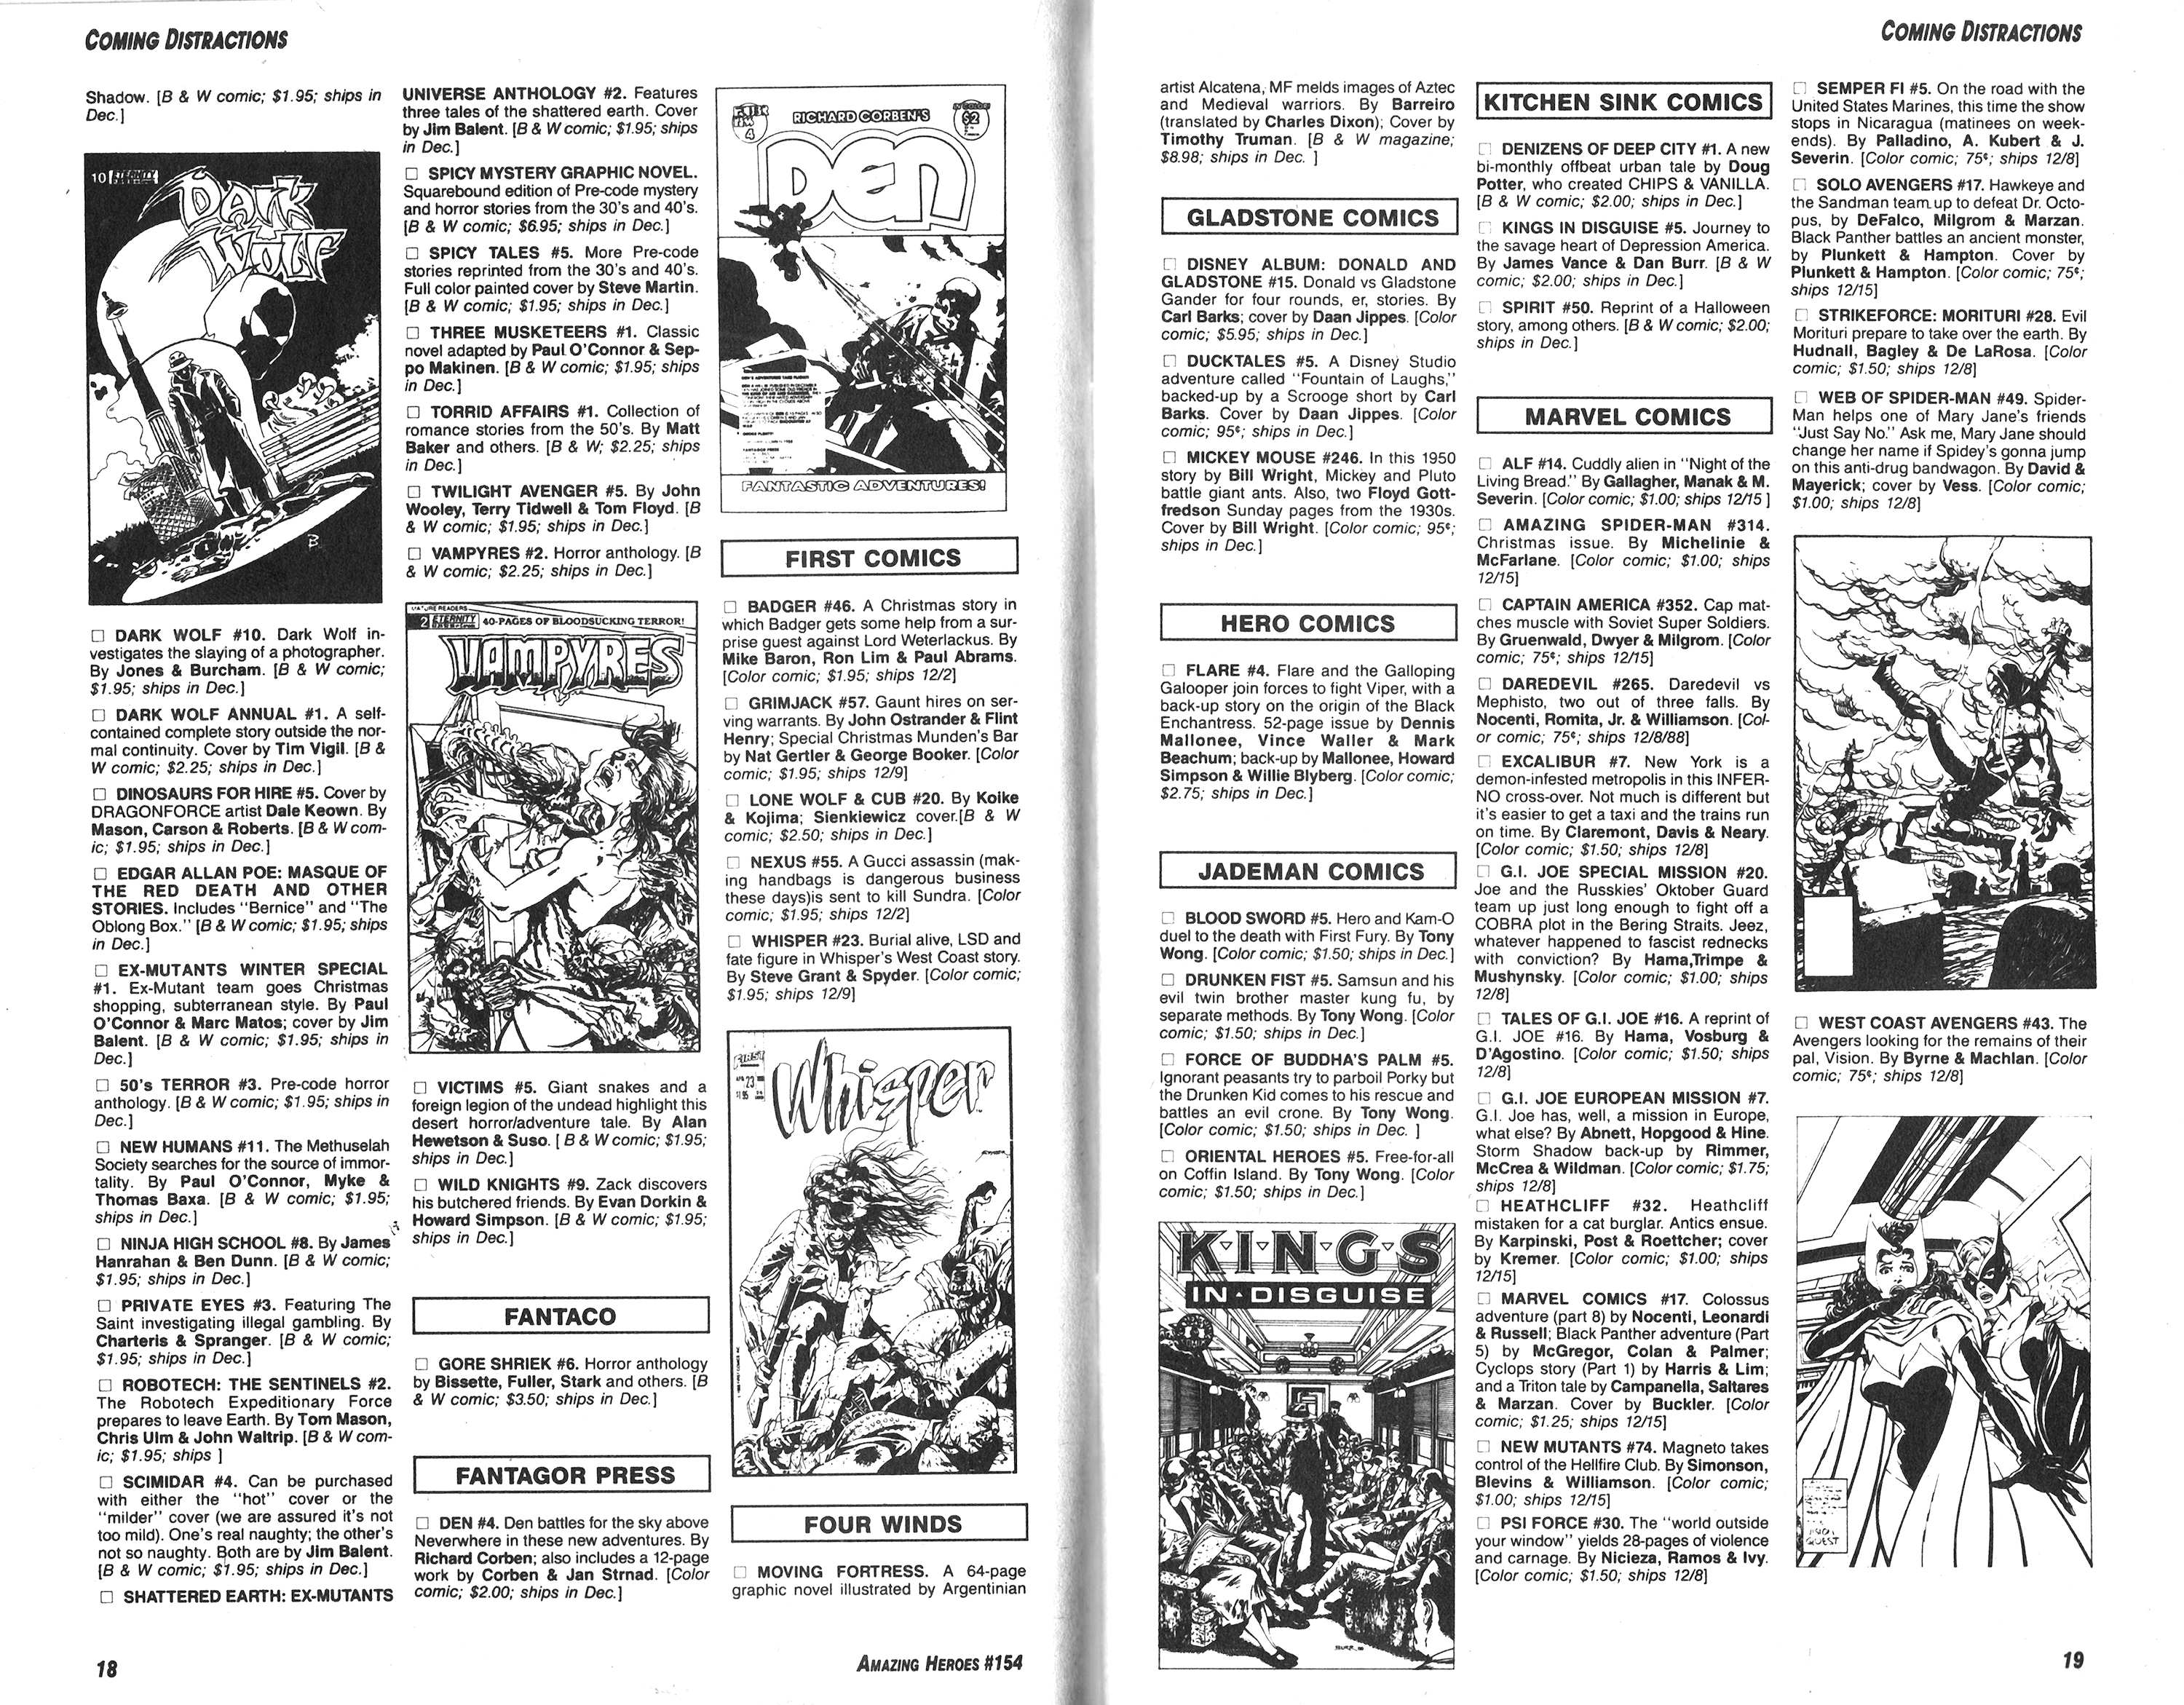 Read online Amazing Heroes comic -  Issue #154 - 10